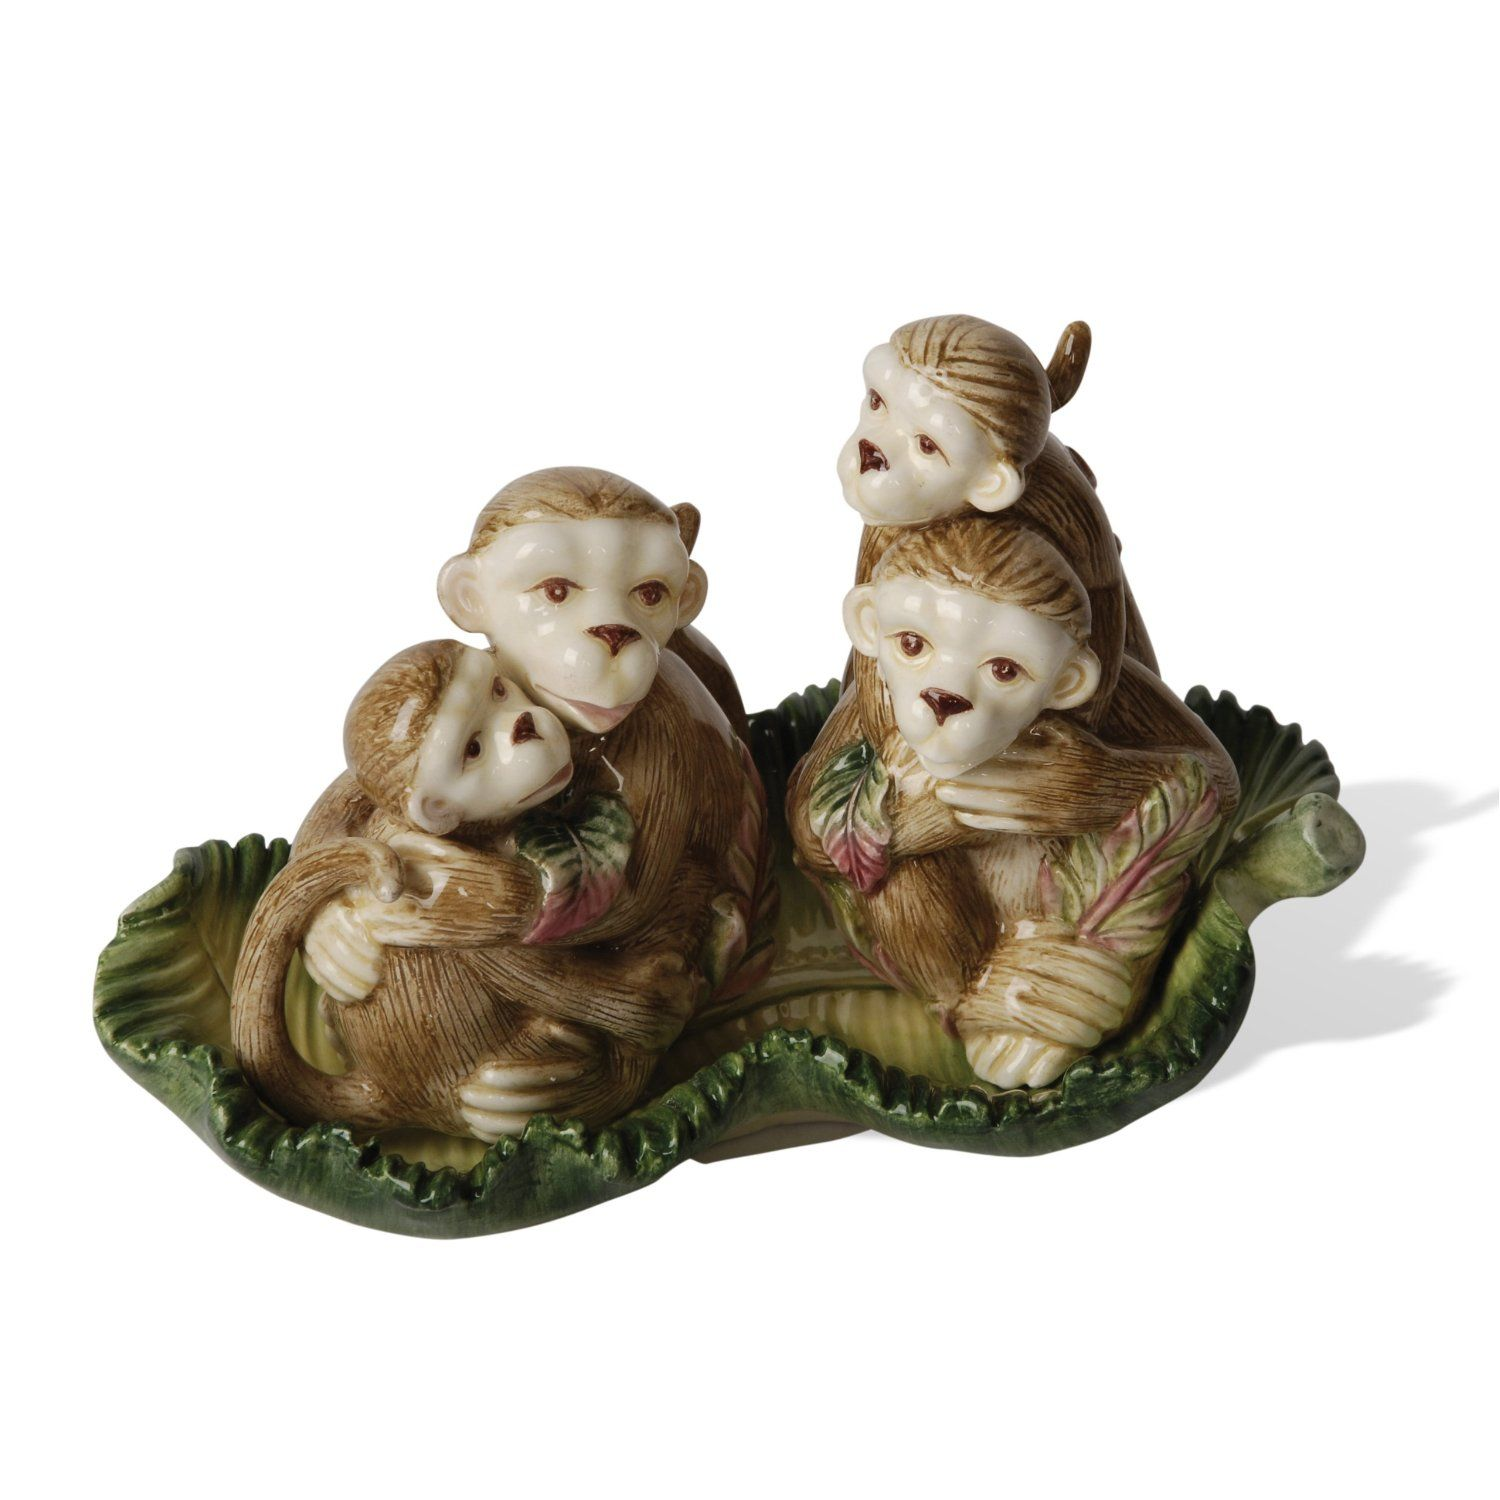 Monkey Salt & Pepper Shakers Amazon